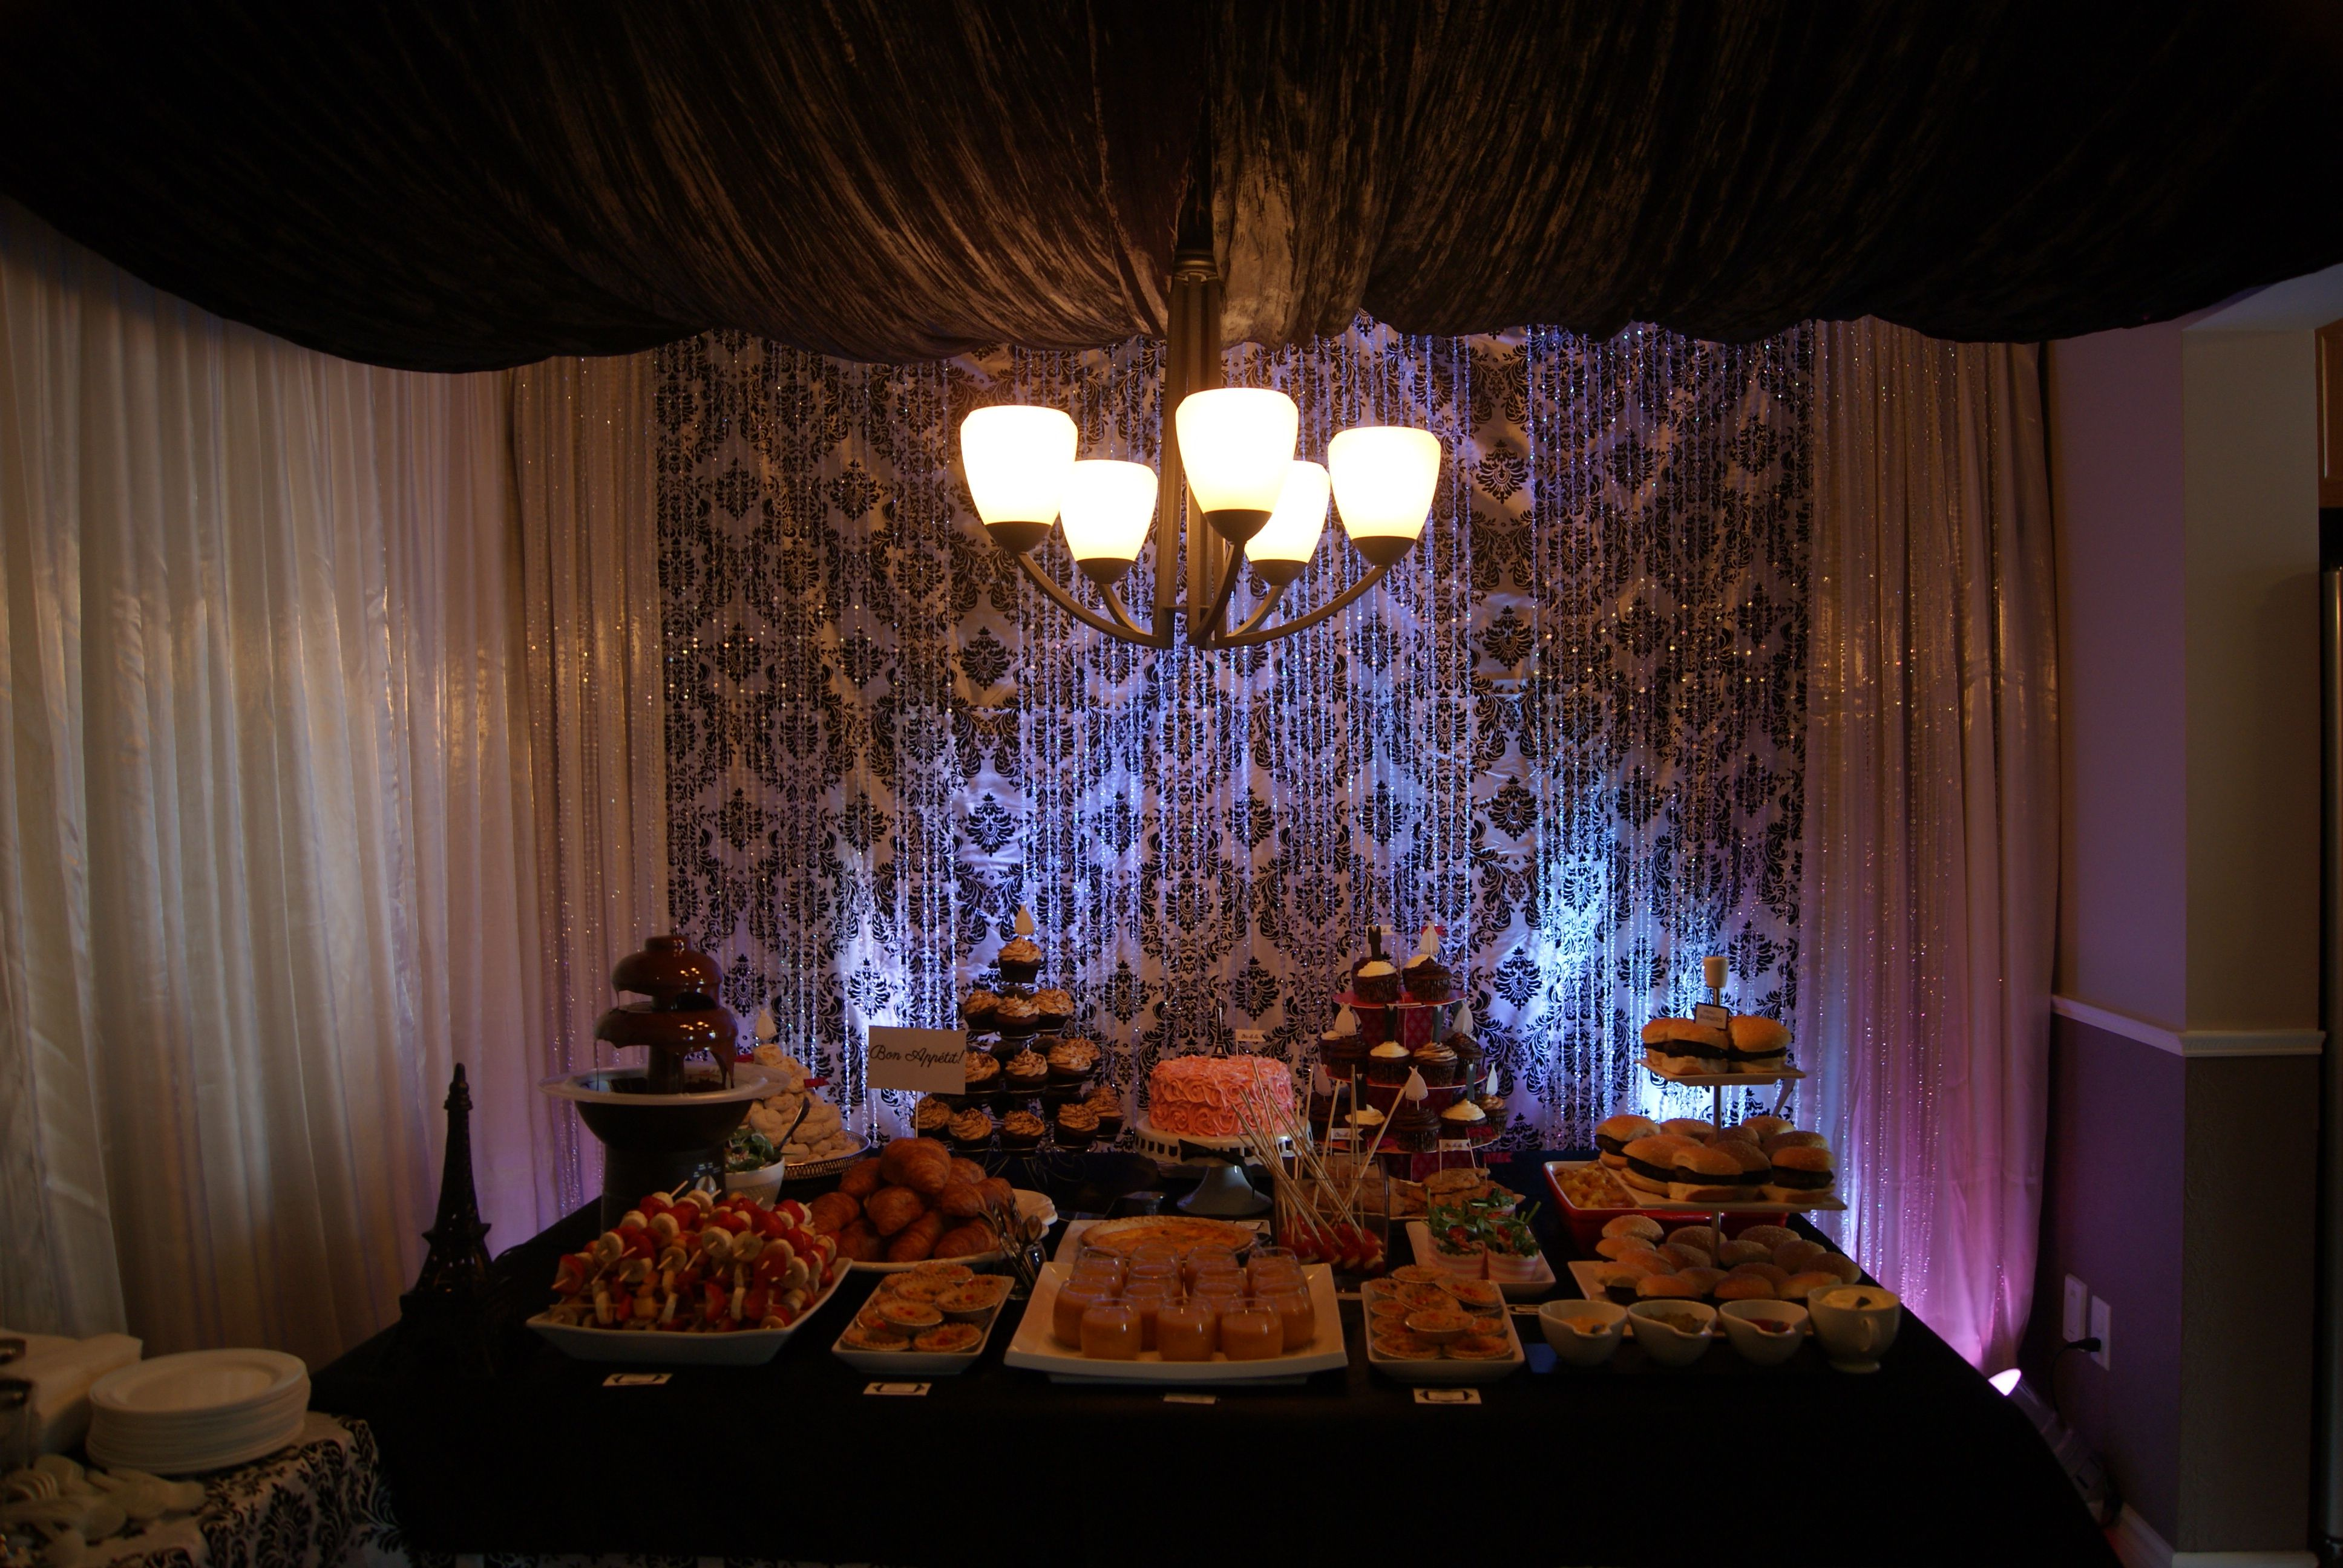 Parisan Themed Bridal Shower. Black and White with a touch of Fushia. Home Decor Canopy made in Dinning Room by Design & Decor. Tables & Menu Items also set up Design & Decor. Cooking done by friends & Sabina for Nooren's Bridal Shower June 2013 Ottawa, Canada